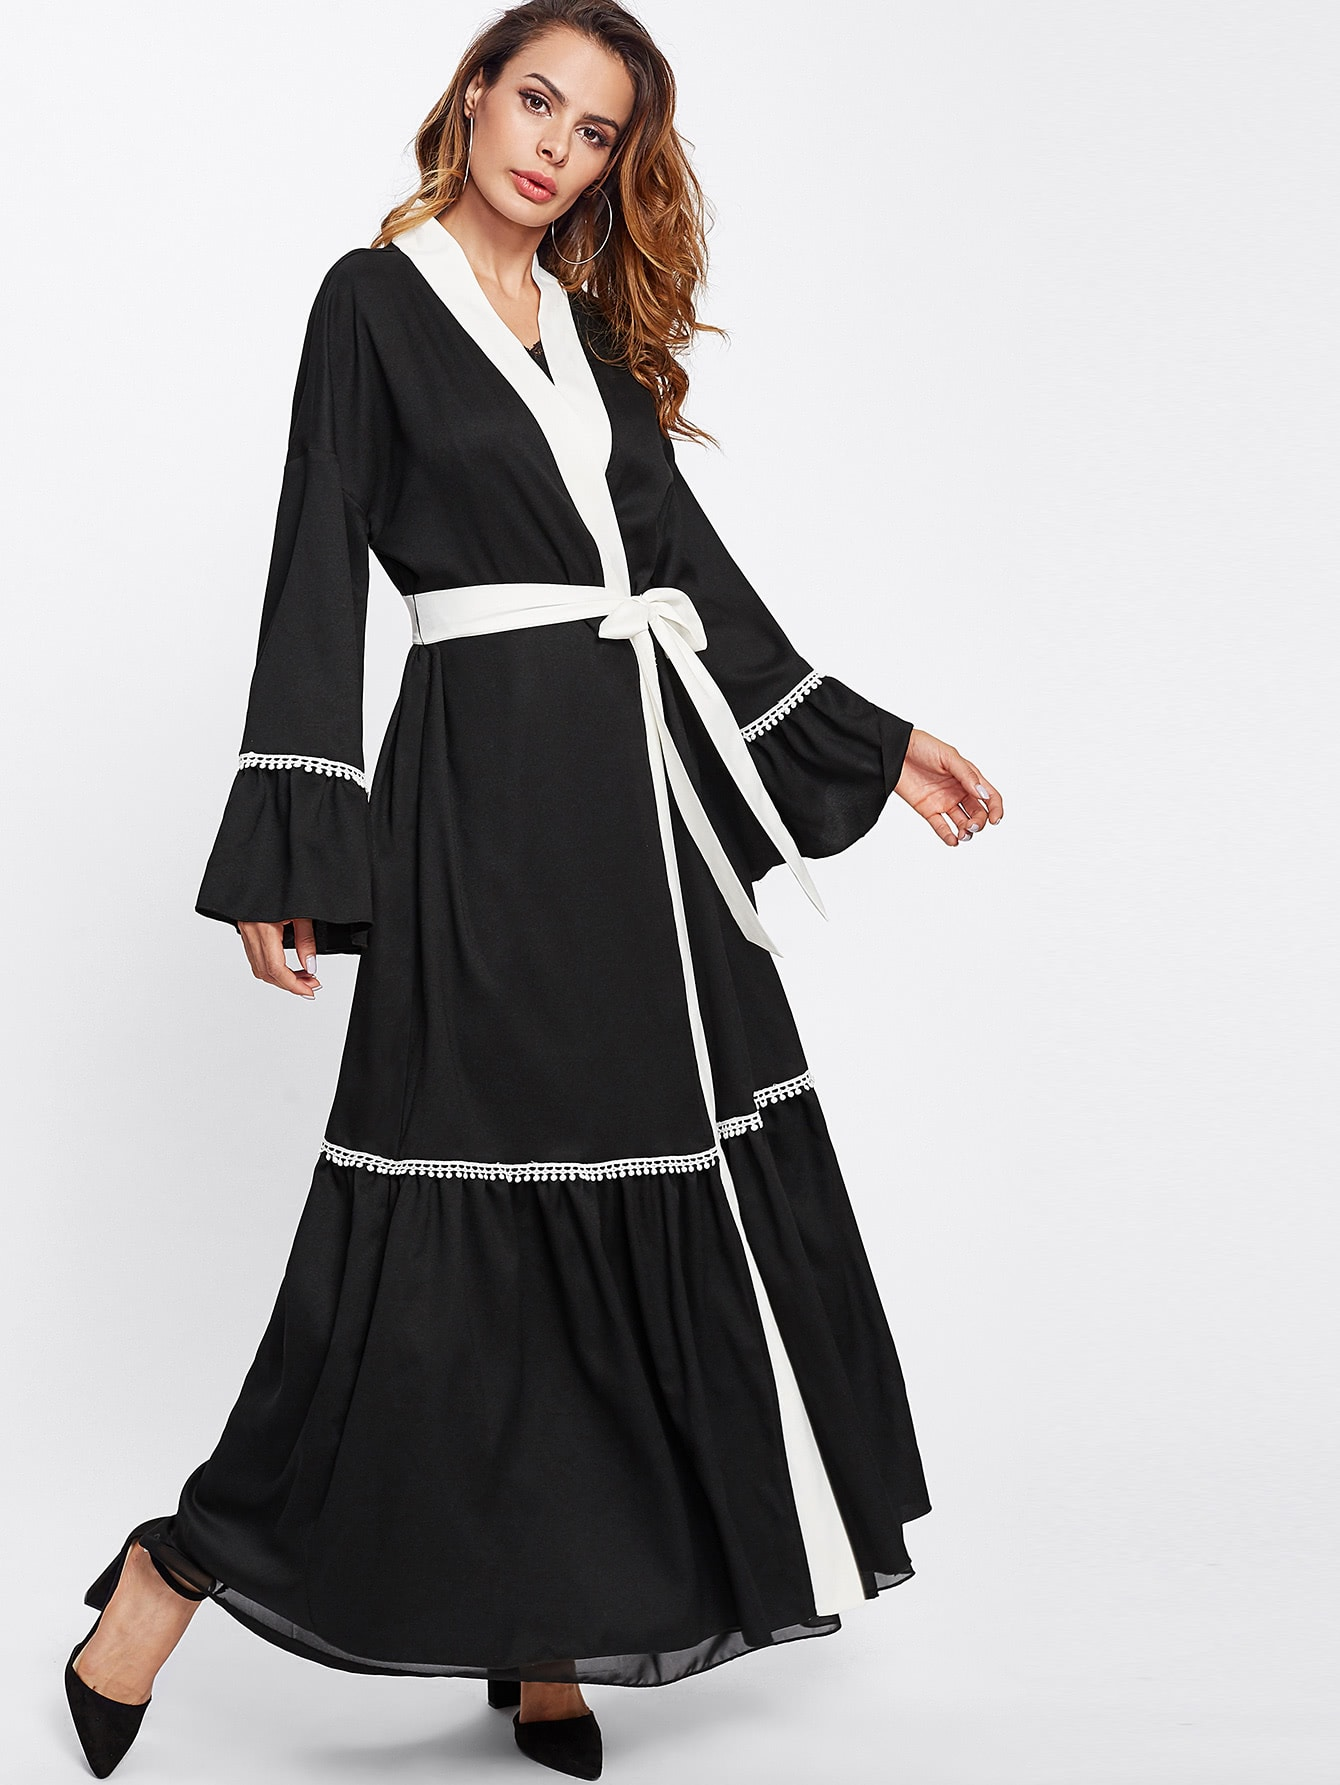 Lace Trim Contrast Neckline And Belt Abaya